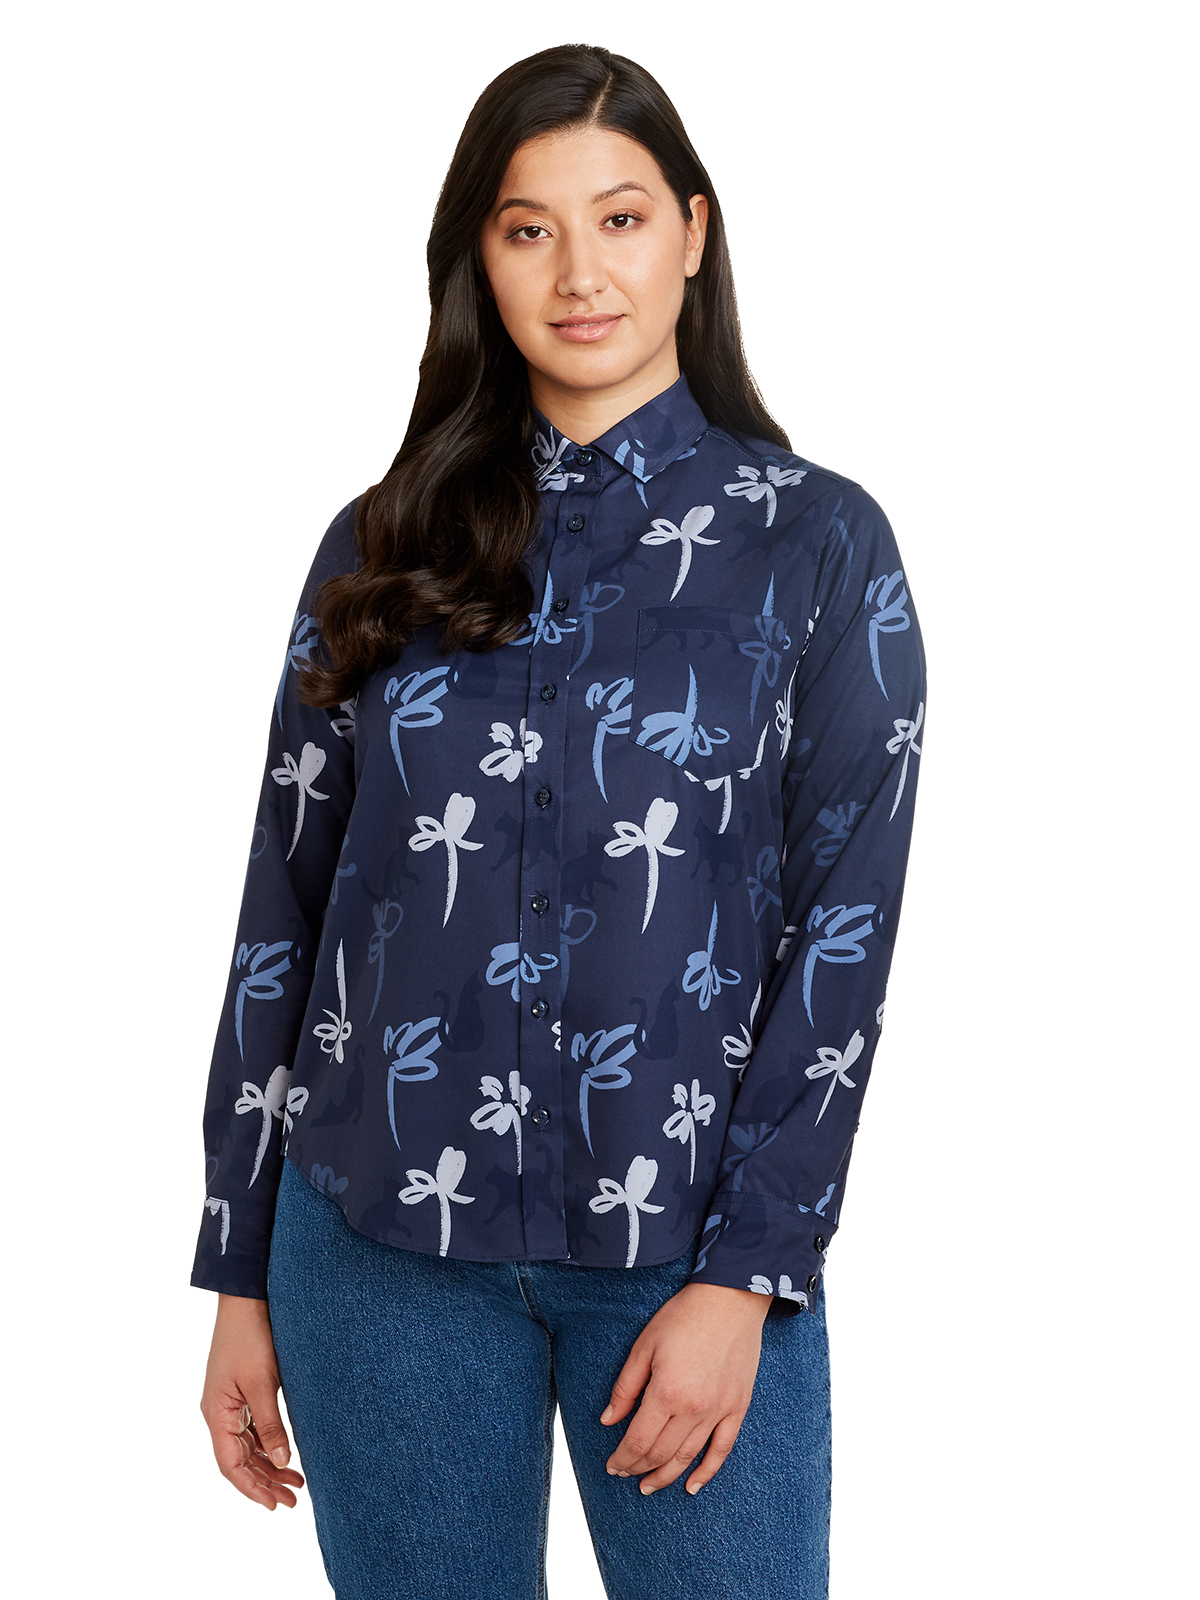 CAT FLORAL LONG SLEEVE EVERYDAY SHIRT